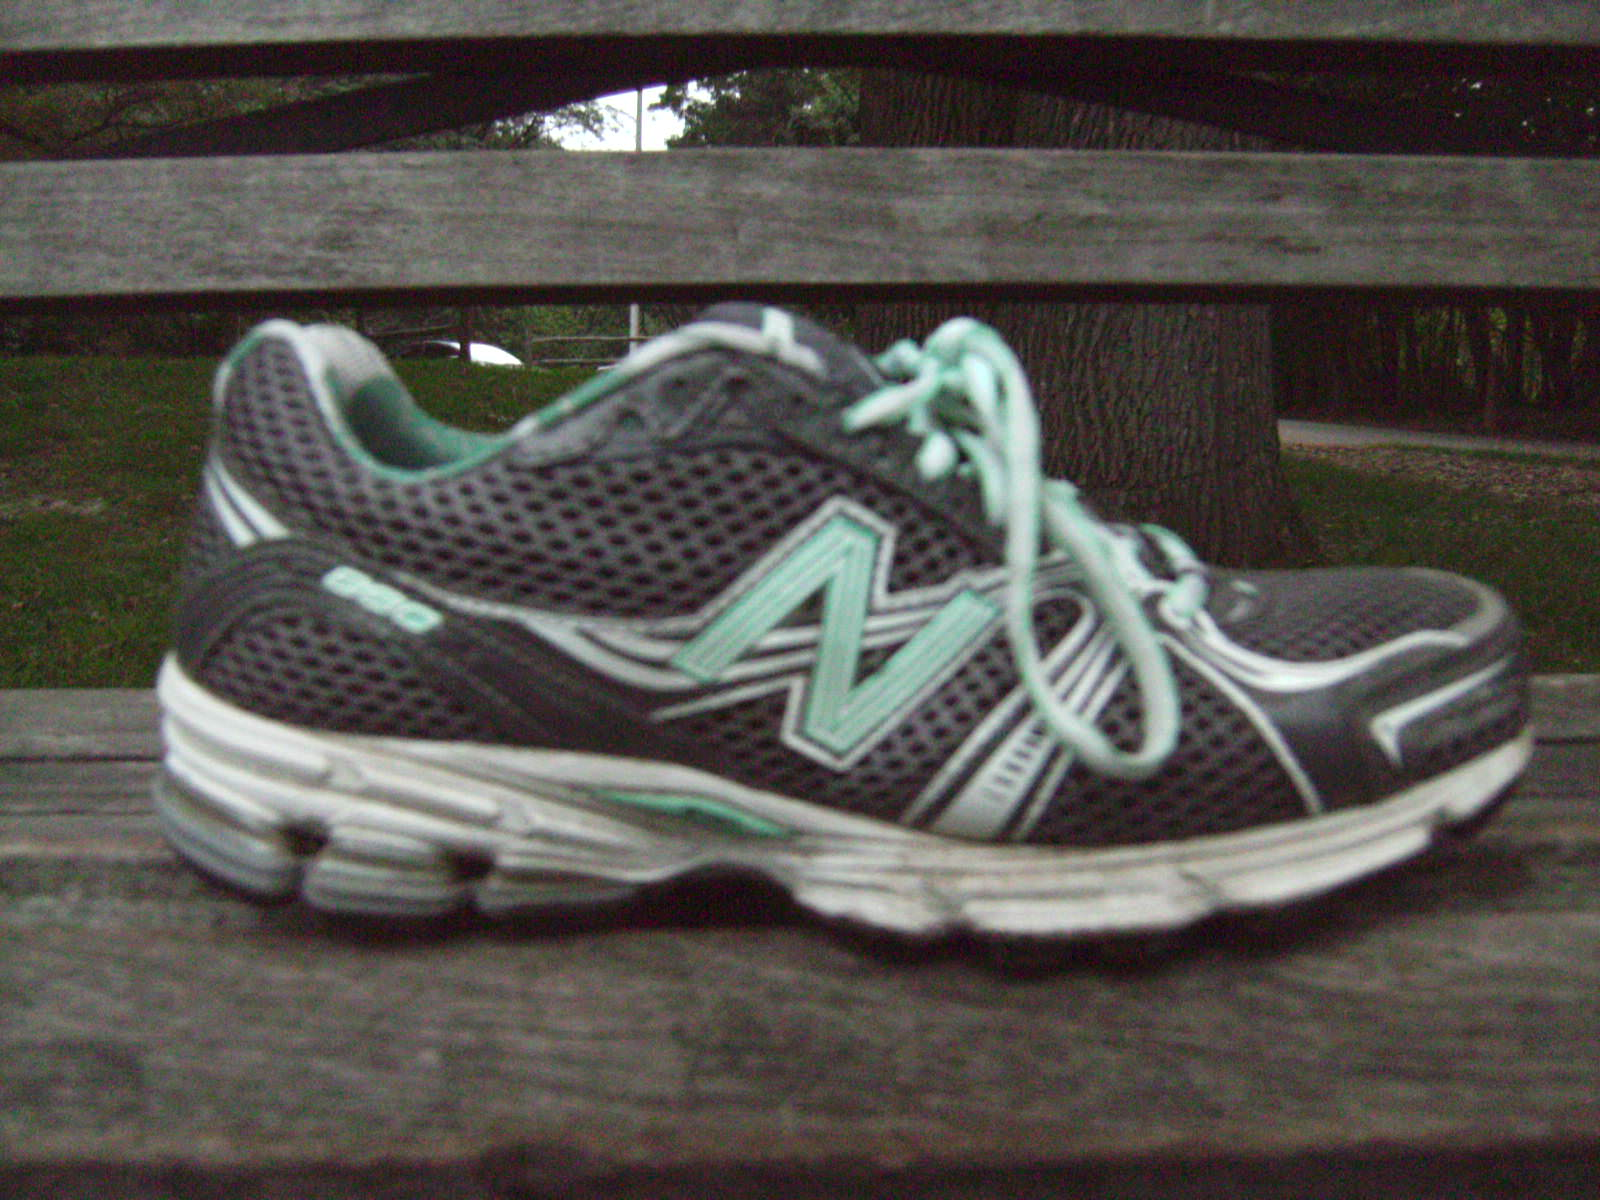 New Balance 880 Running Shoes Review | Running Shoes Guru